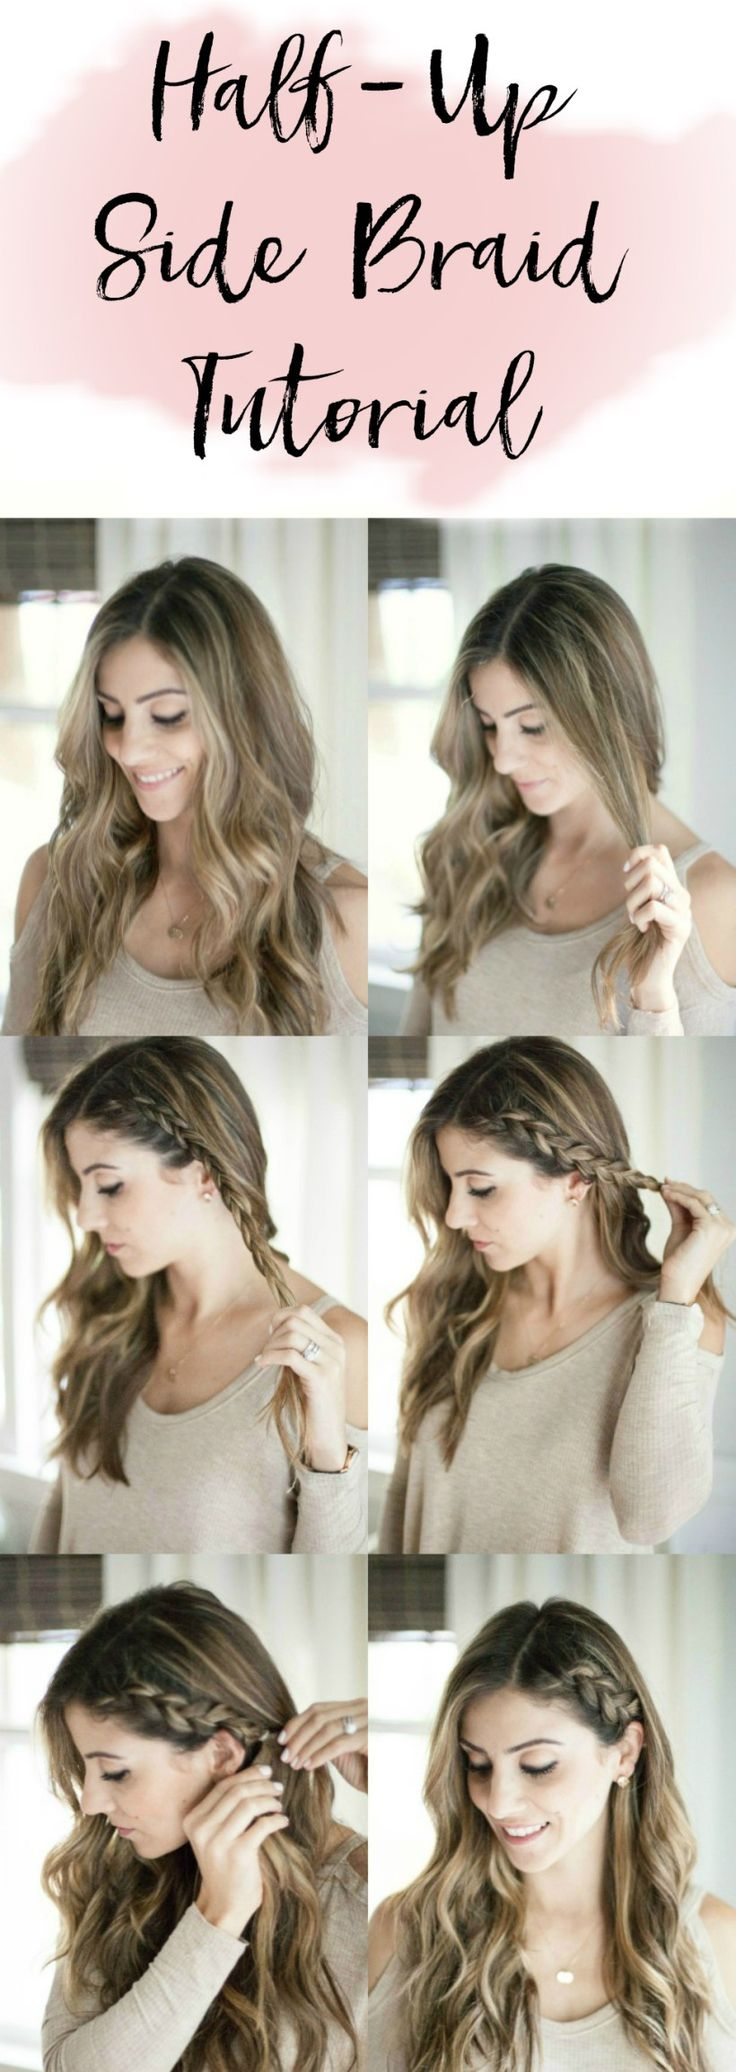 A Simple Half Up Side Braid Hair Tutorial Perfect For Adding Little Elegance To Your